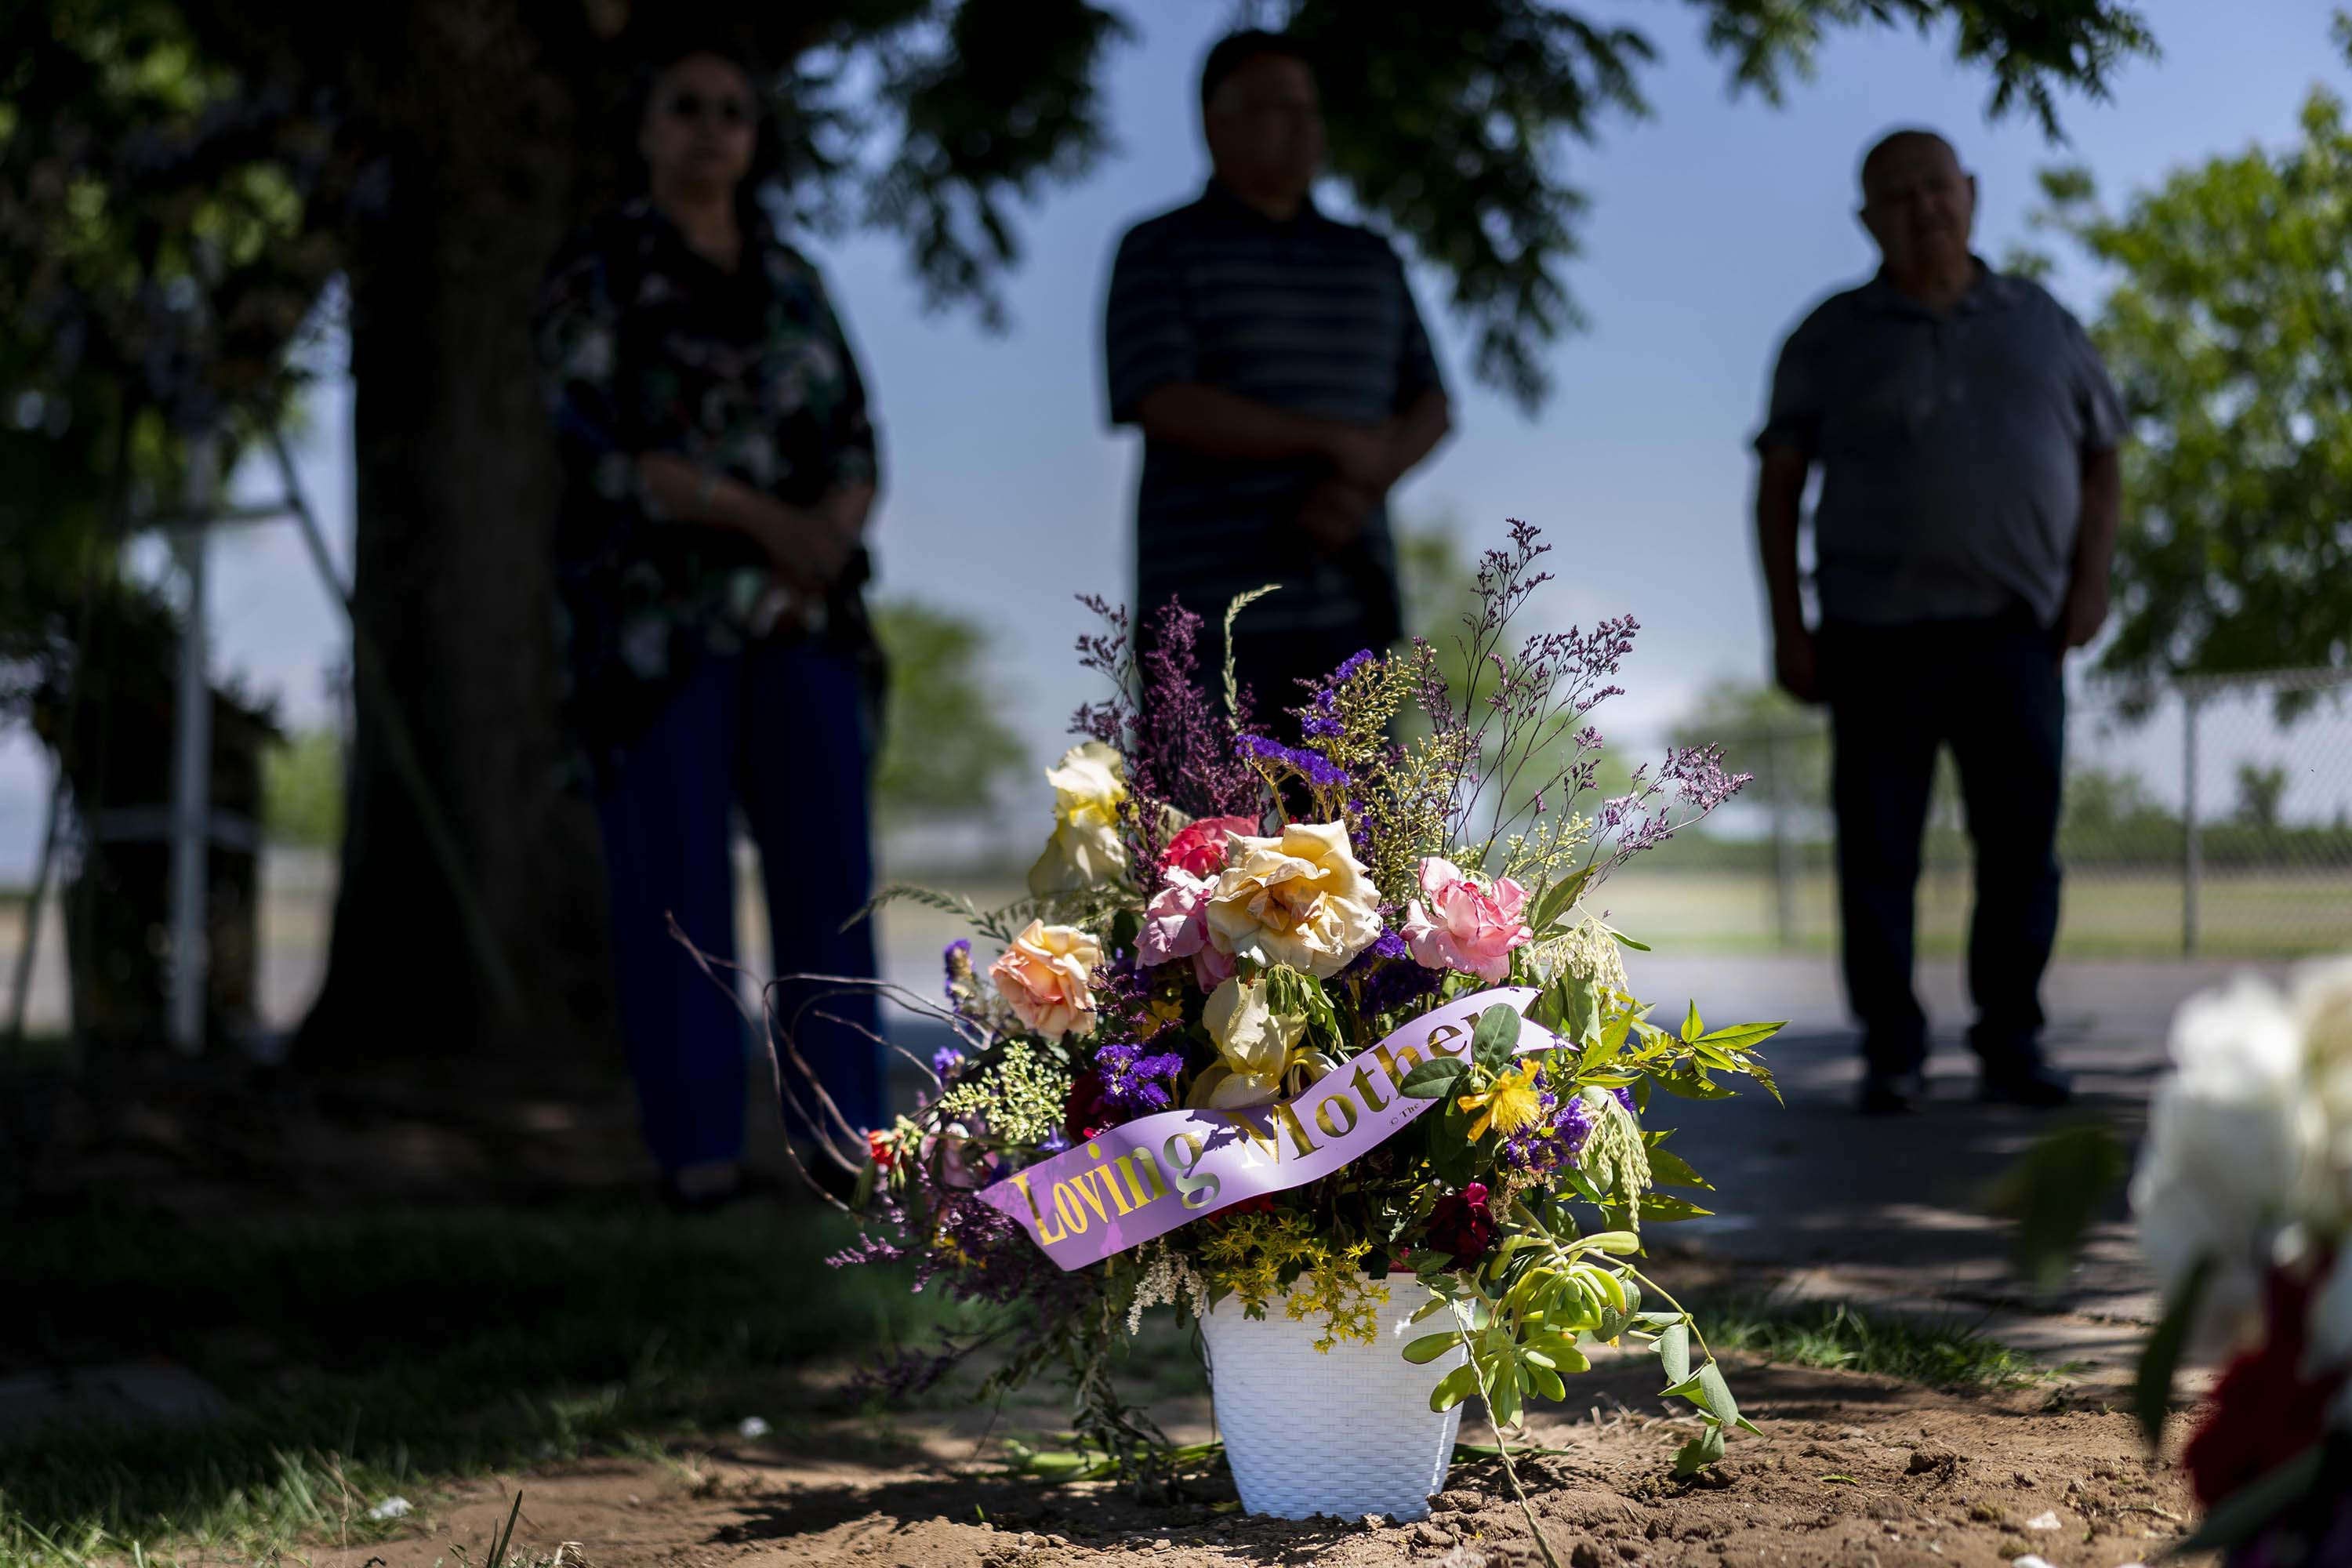 Family members of Hortensia Sosa, who died from COVID-19 at a nursing home in Visalia, California, mourn over her grave in Dinuba, California, on May 3.